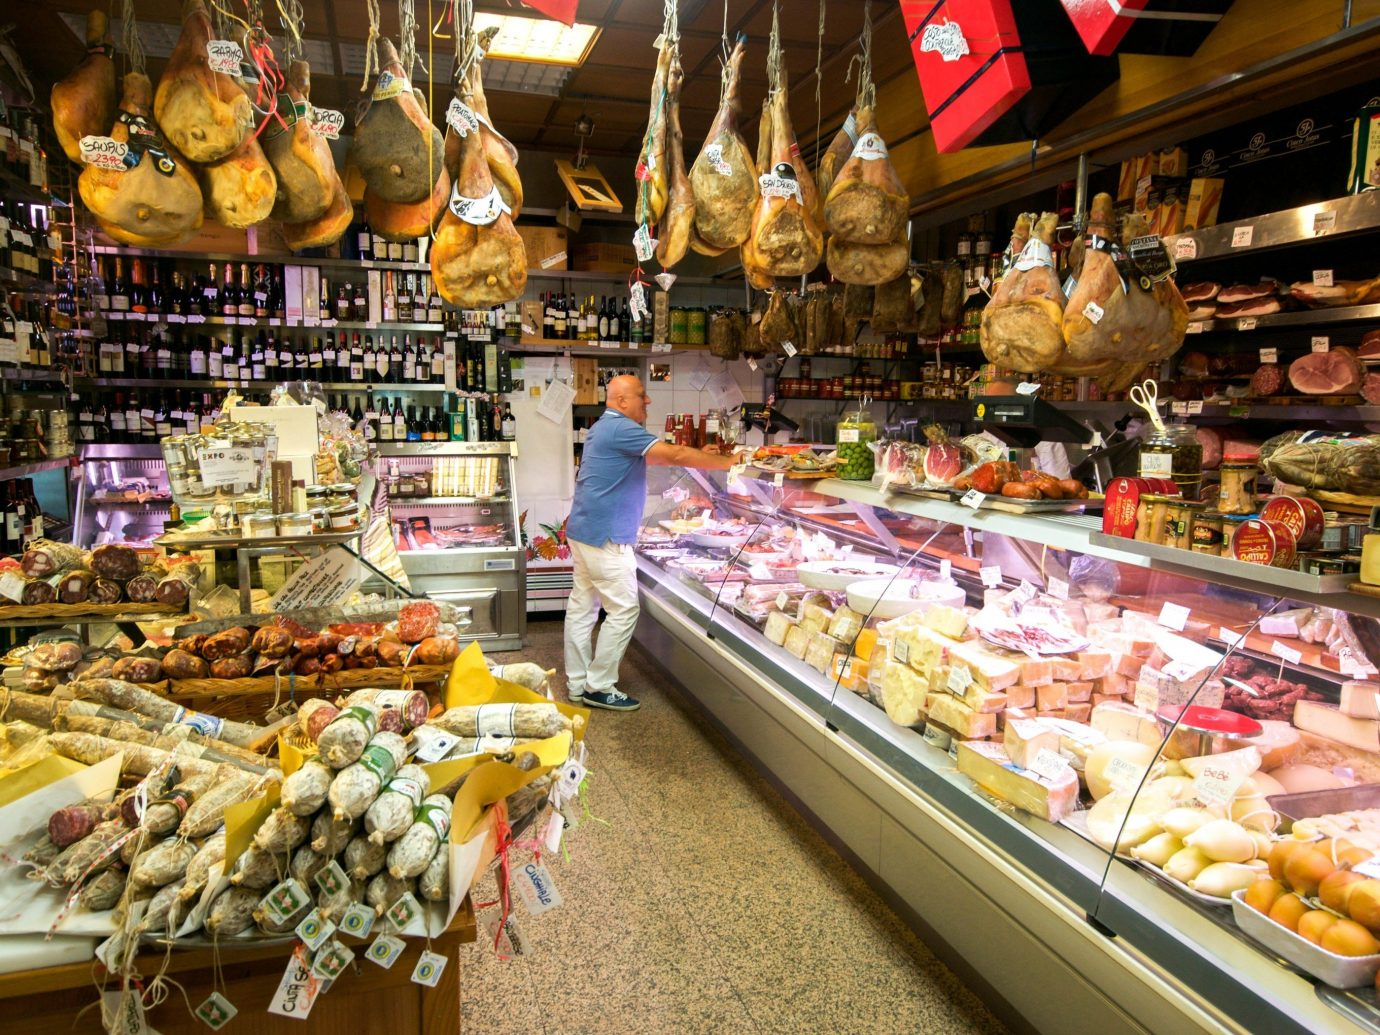 Jetsetter Guides grocery store marketplace supermarket scene indoor pastry retail charcuterie public space City store food market greengrocer delicatessen whole food meal convenience food pâtisserie bazaar convenience store stall counter Shop produce baked sale